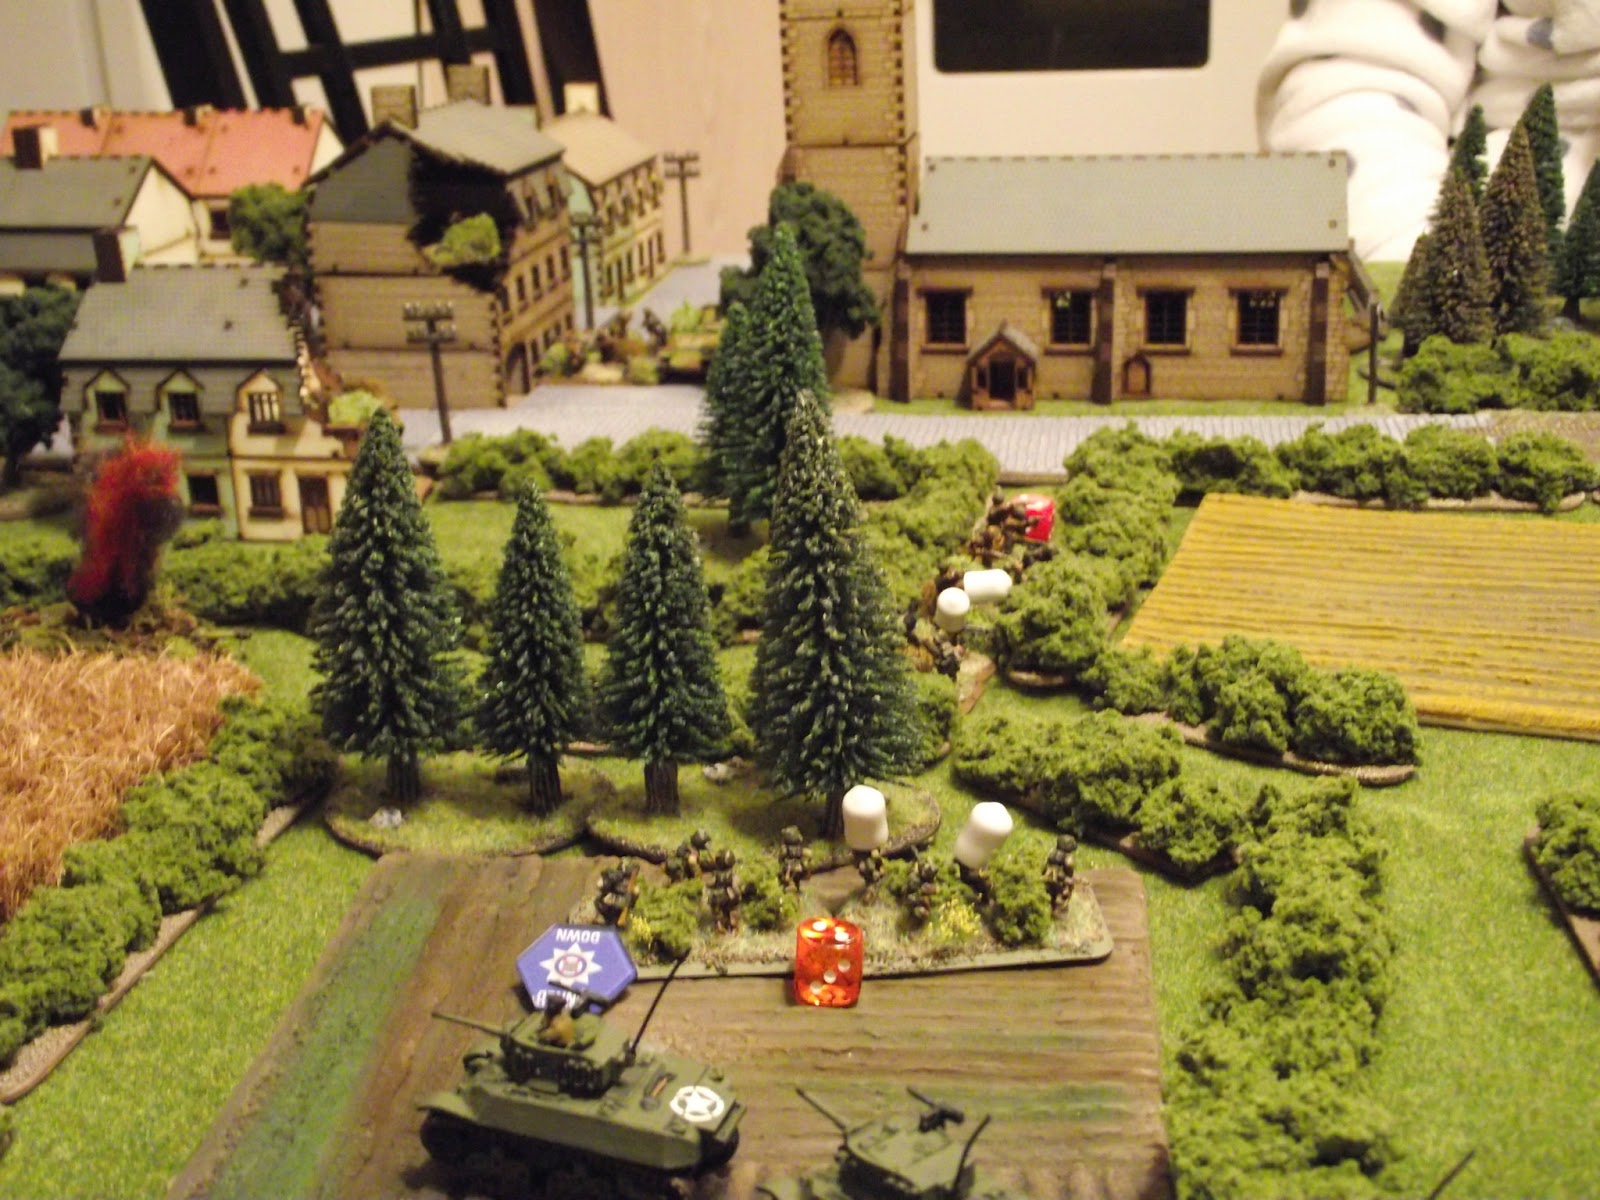 The surprise of the night. 2nd squad from the 101st airborne platoon races to the exposed flank of the 3rd SS squad and is hit mid run by the sniper, killing one man outright, and pinning the squad... stopping them dead.... darn!